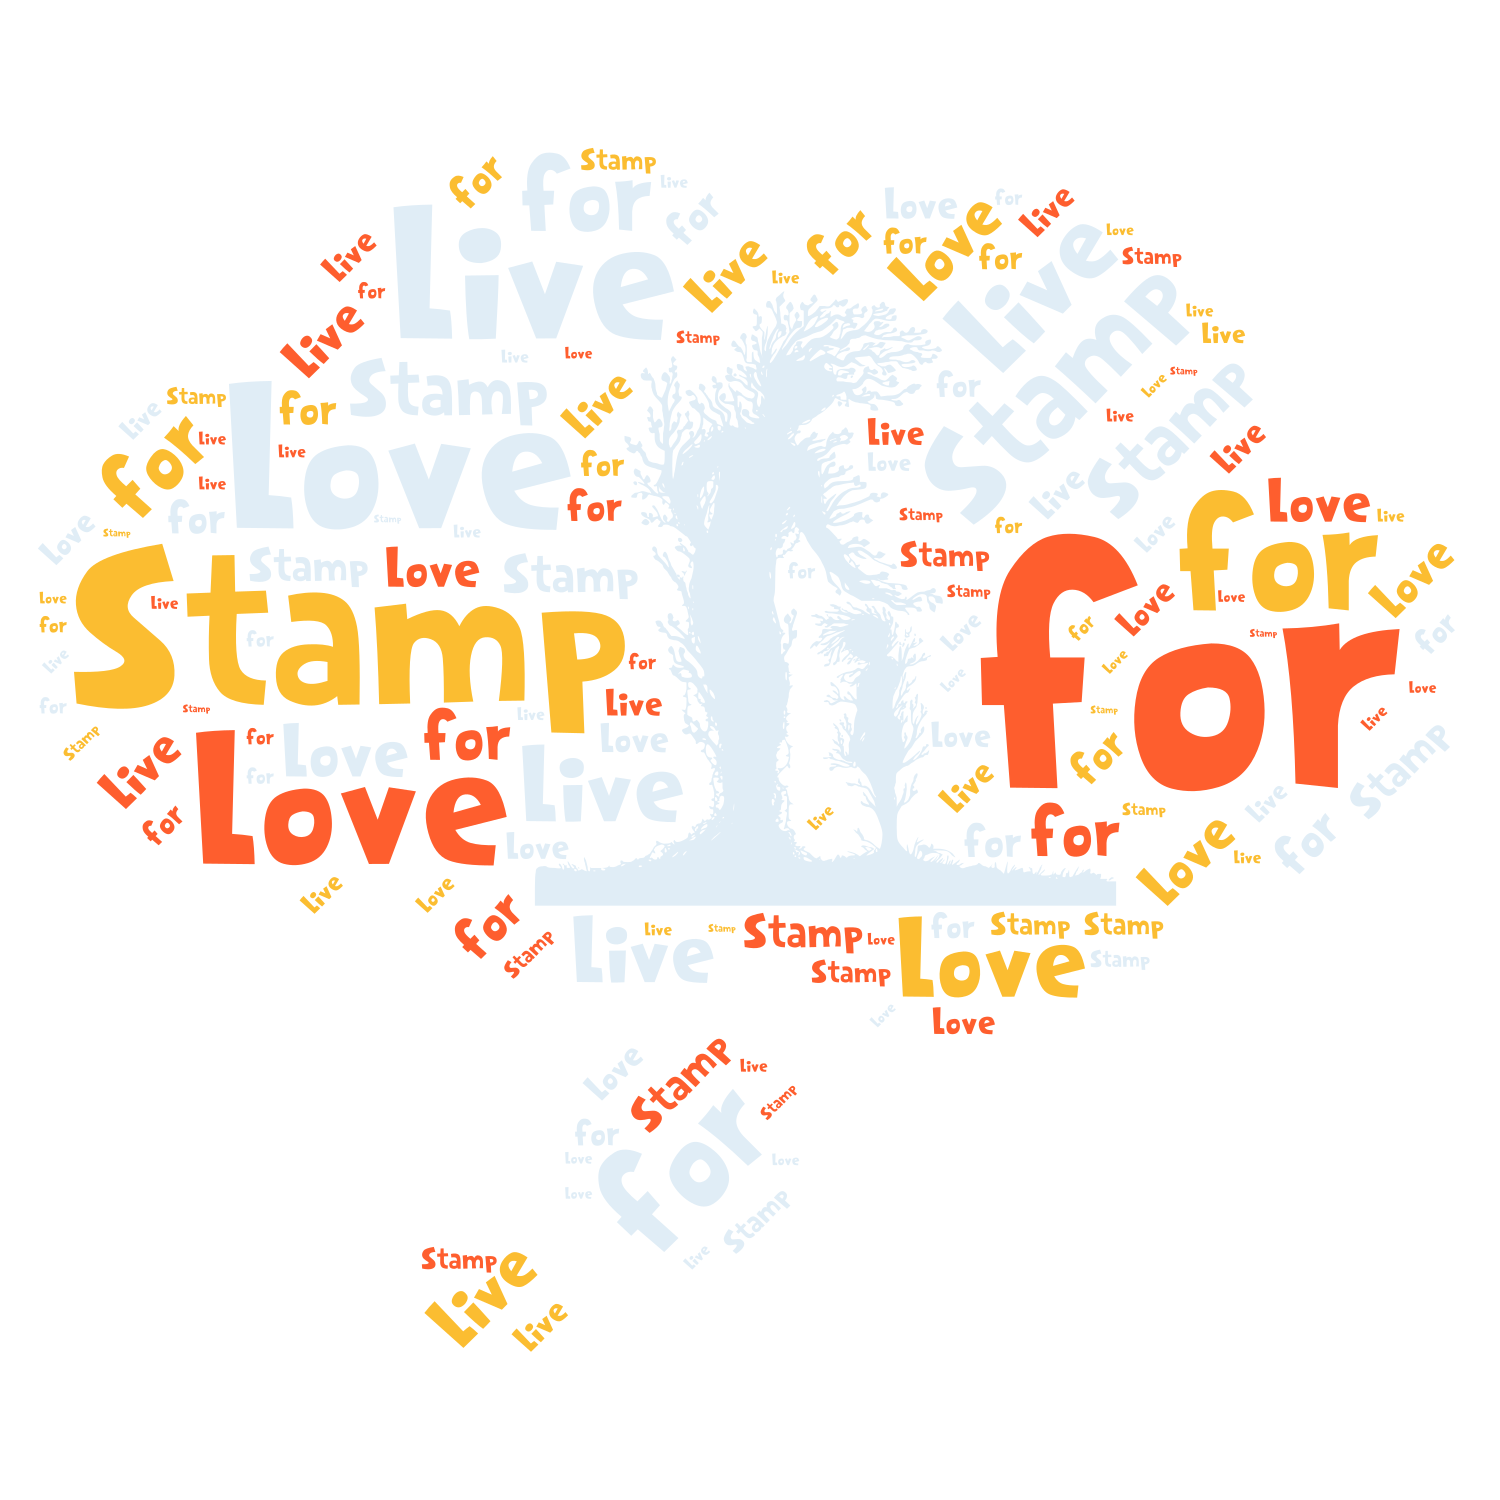 Stamp for Love Live